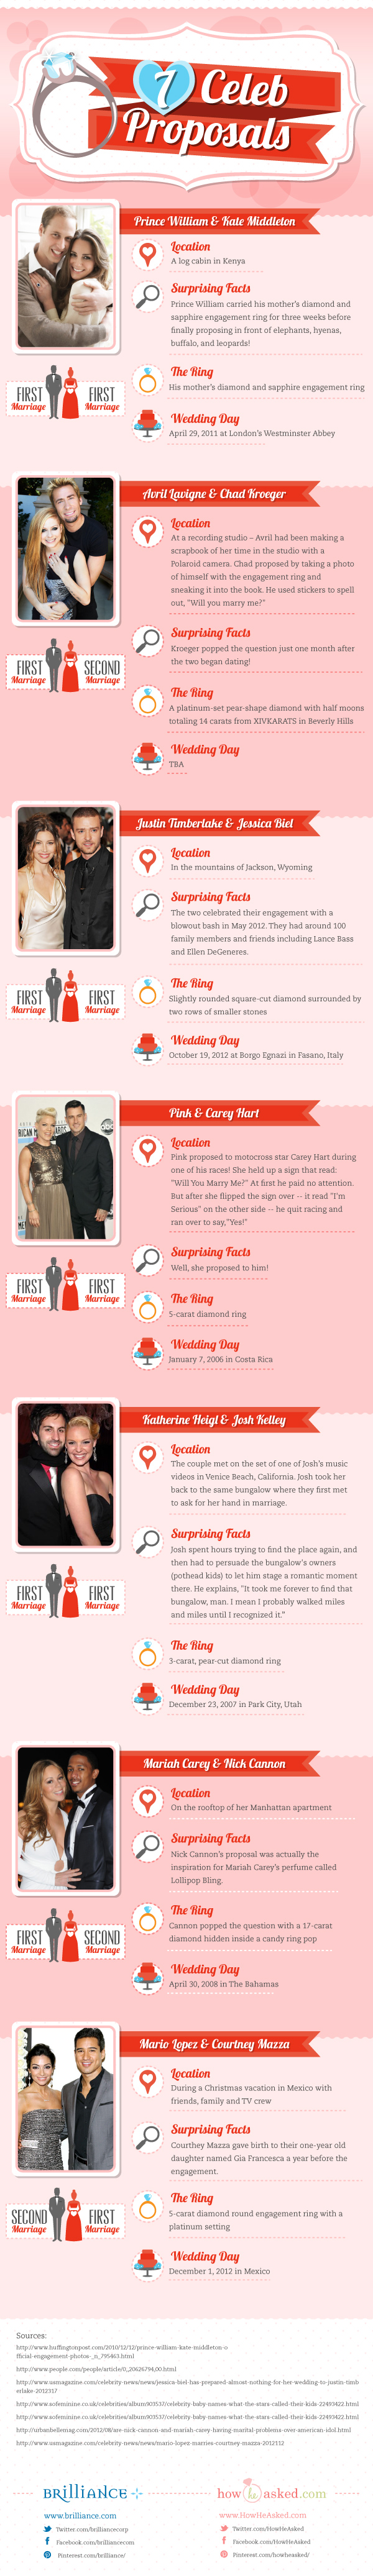 Image 1 of Celebrity Marriage Proposals: an Infographic!